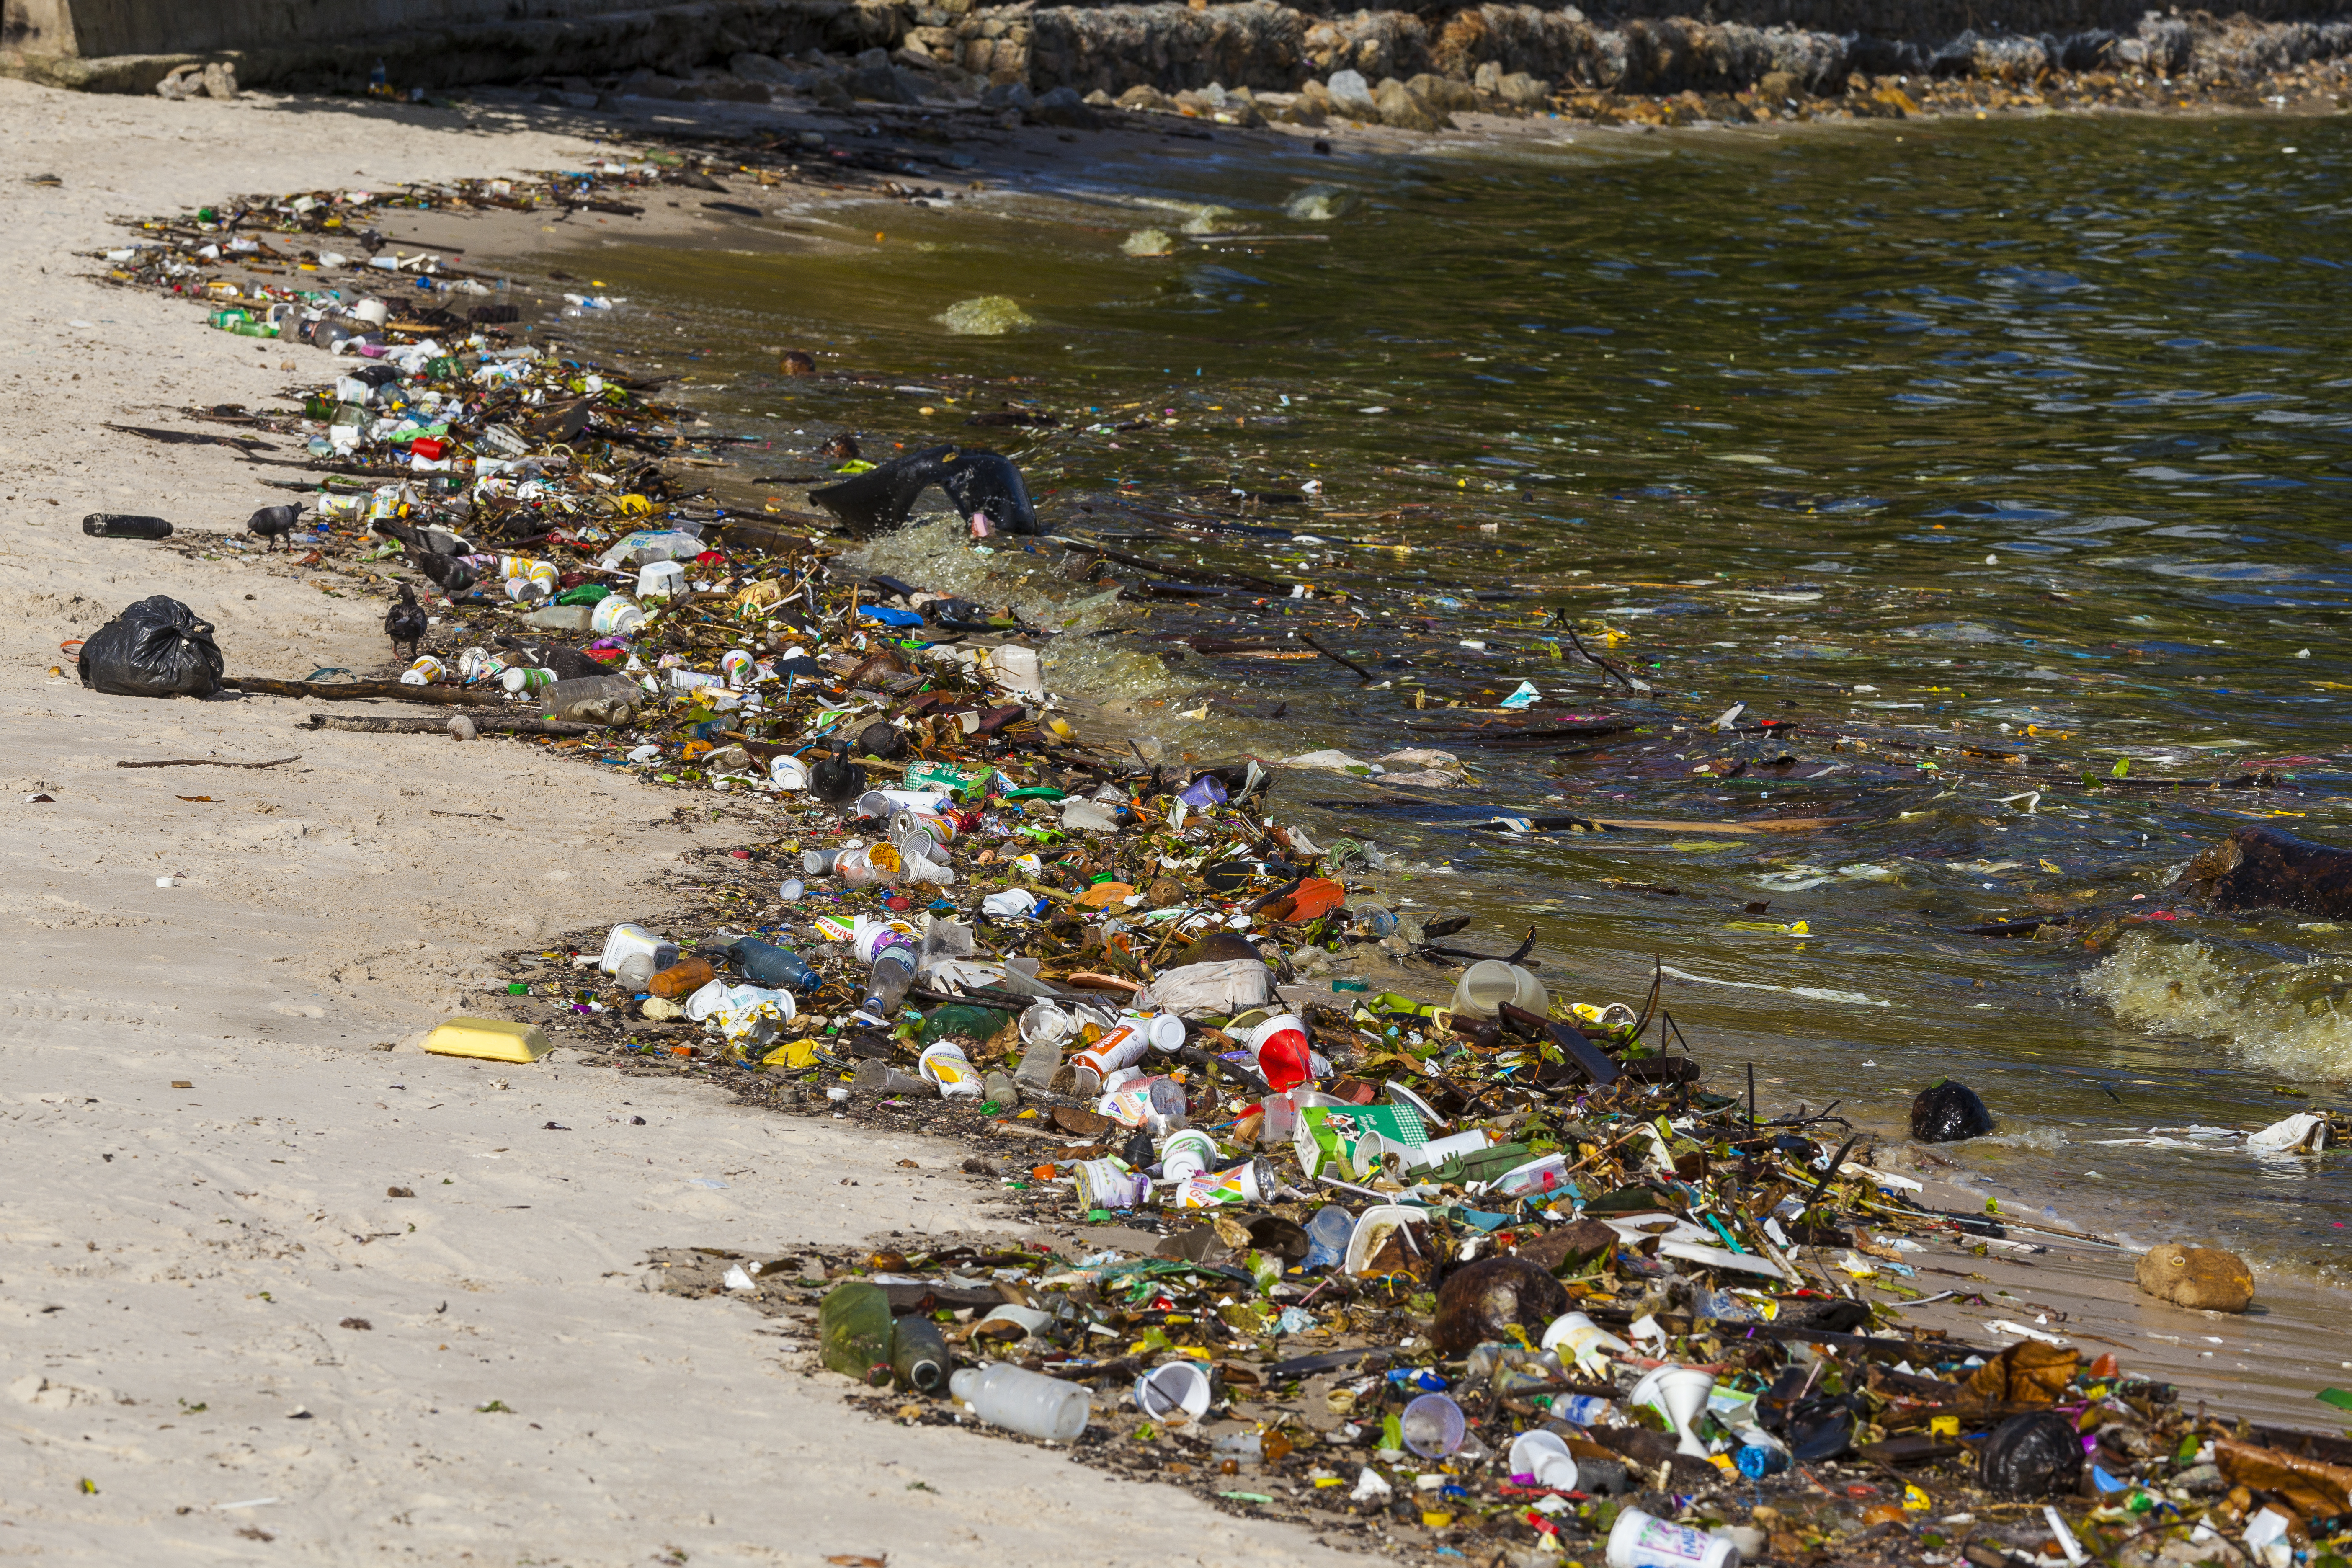 Trash lines the shore of Rio's Guanabara Bay